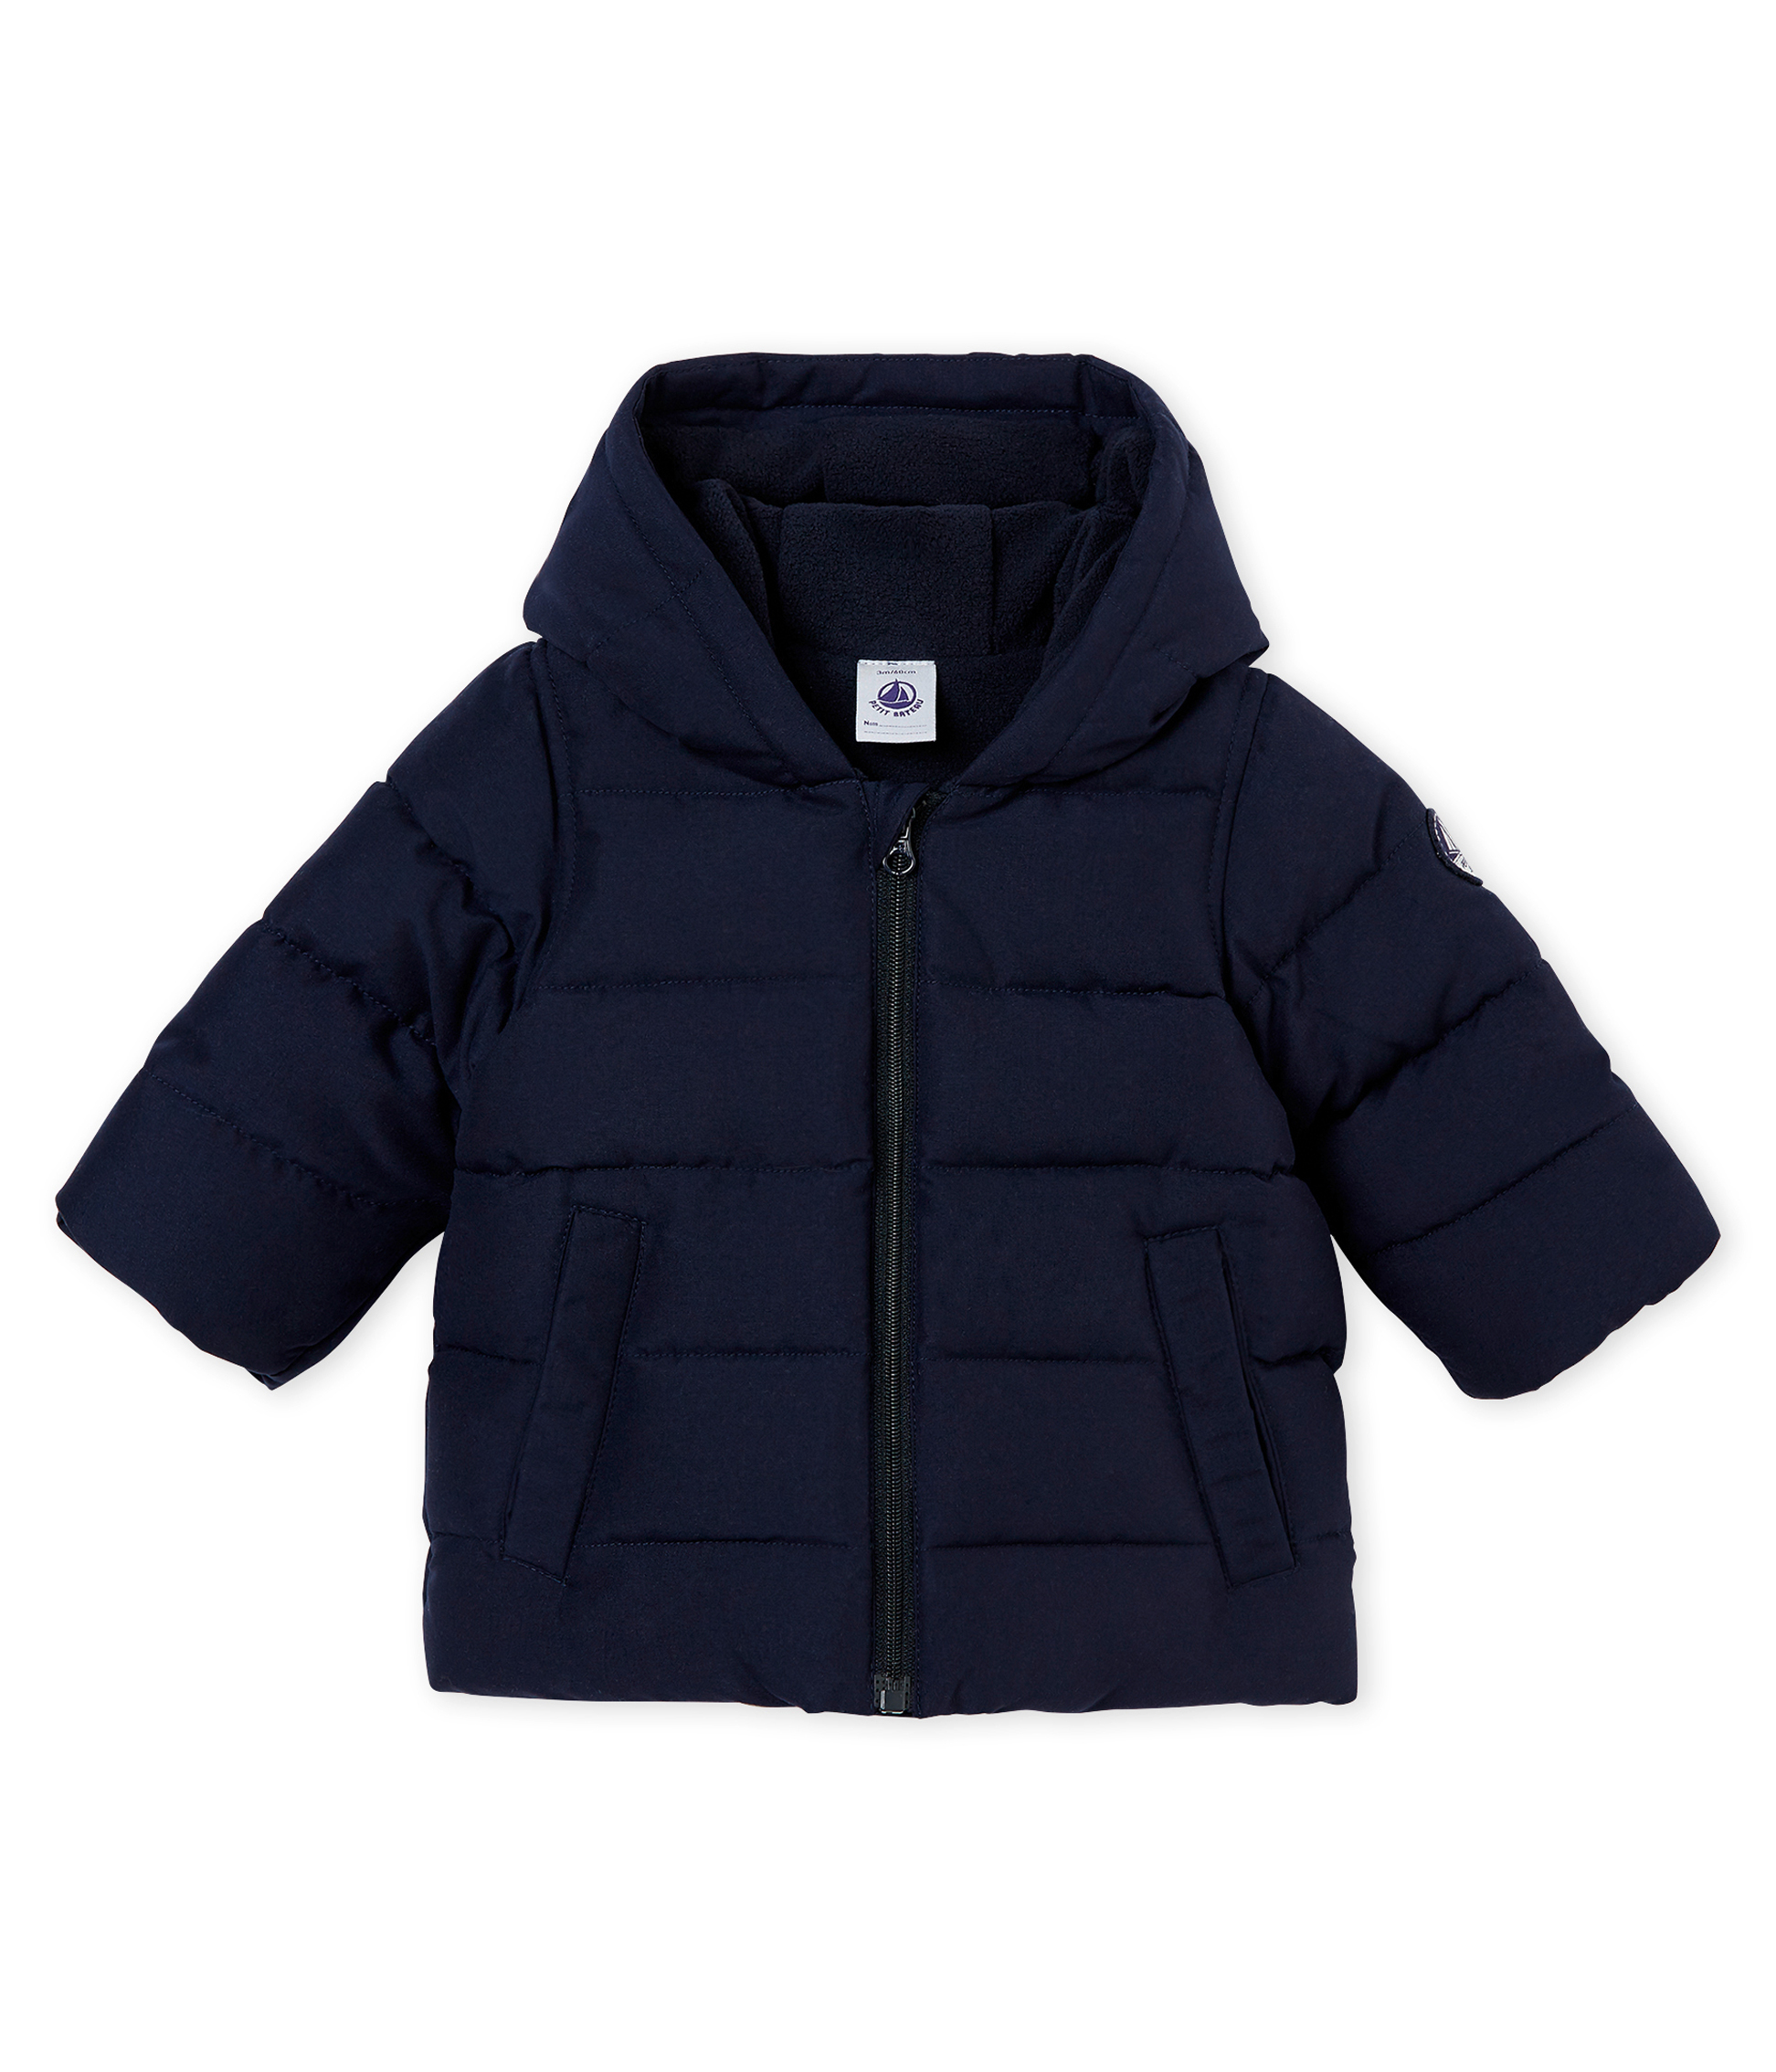 5859727b6 Baby boy s padded microfibre jacket